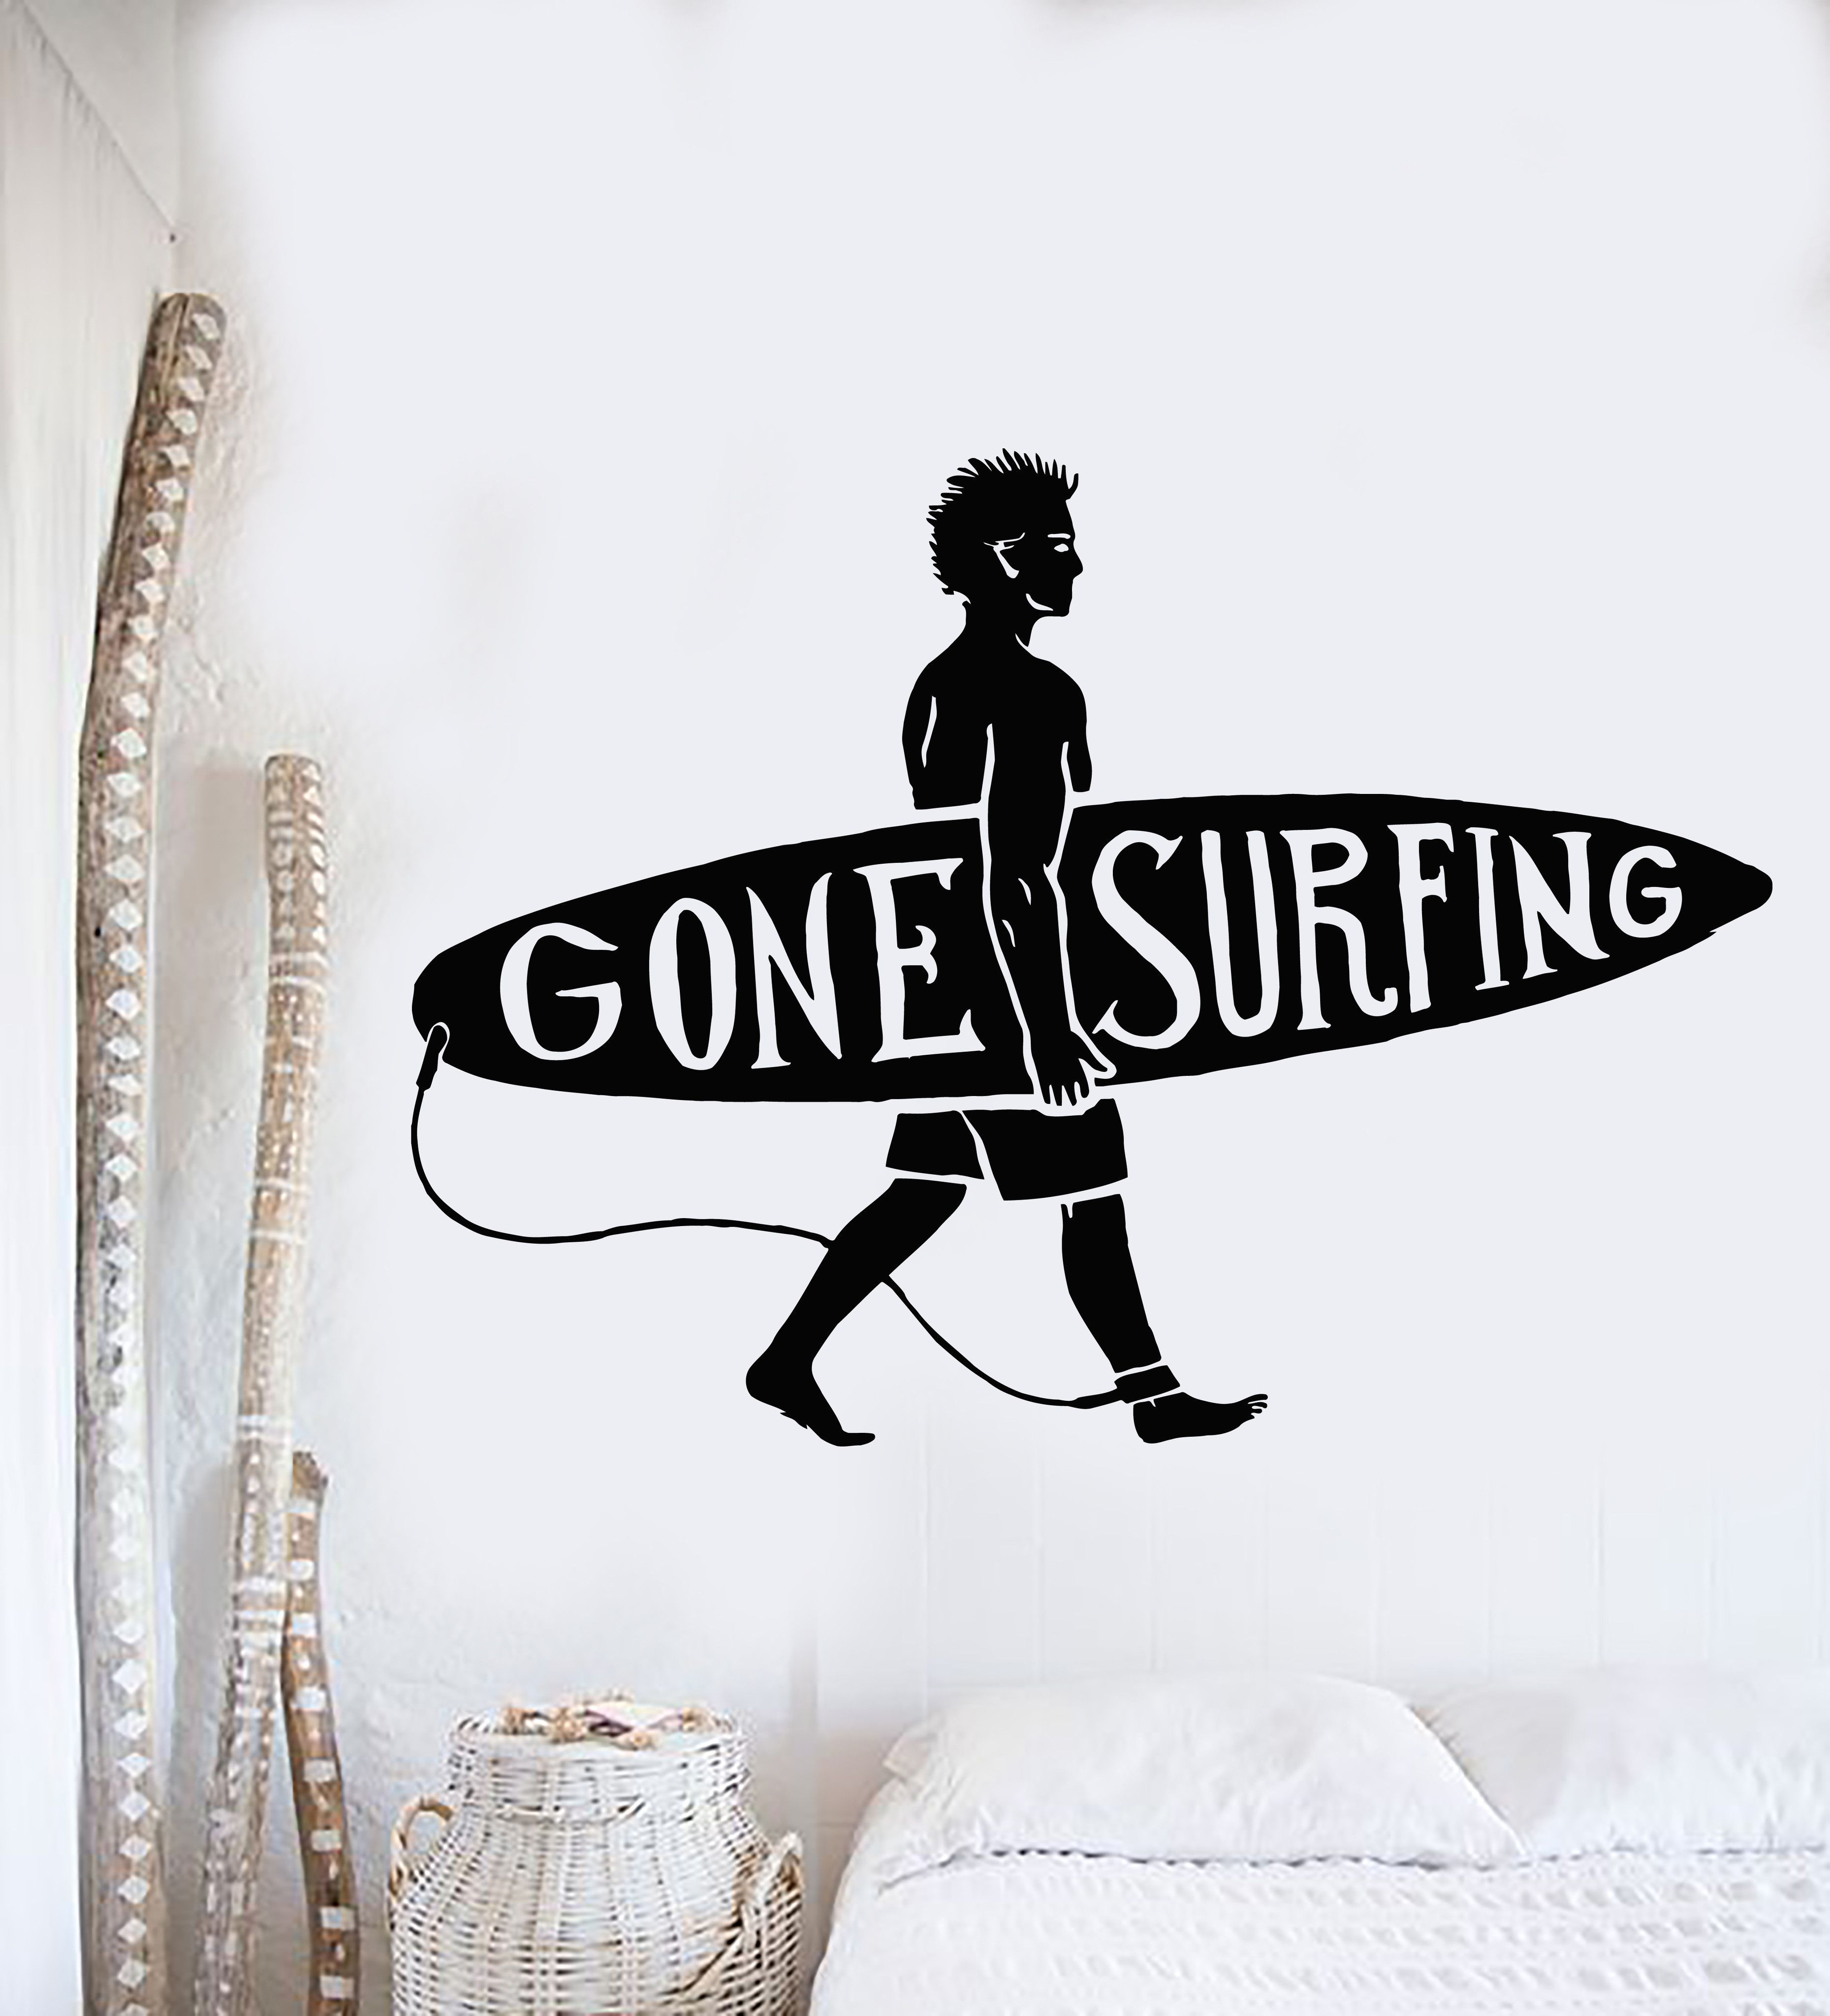 Vinyl Wall Decal Surfing Guy Surf Beach Surfer Quote